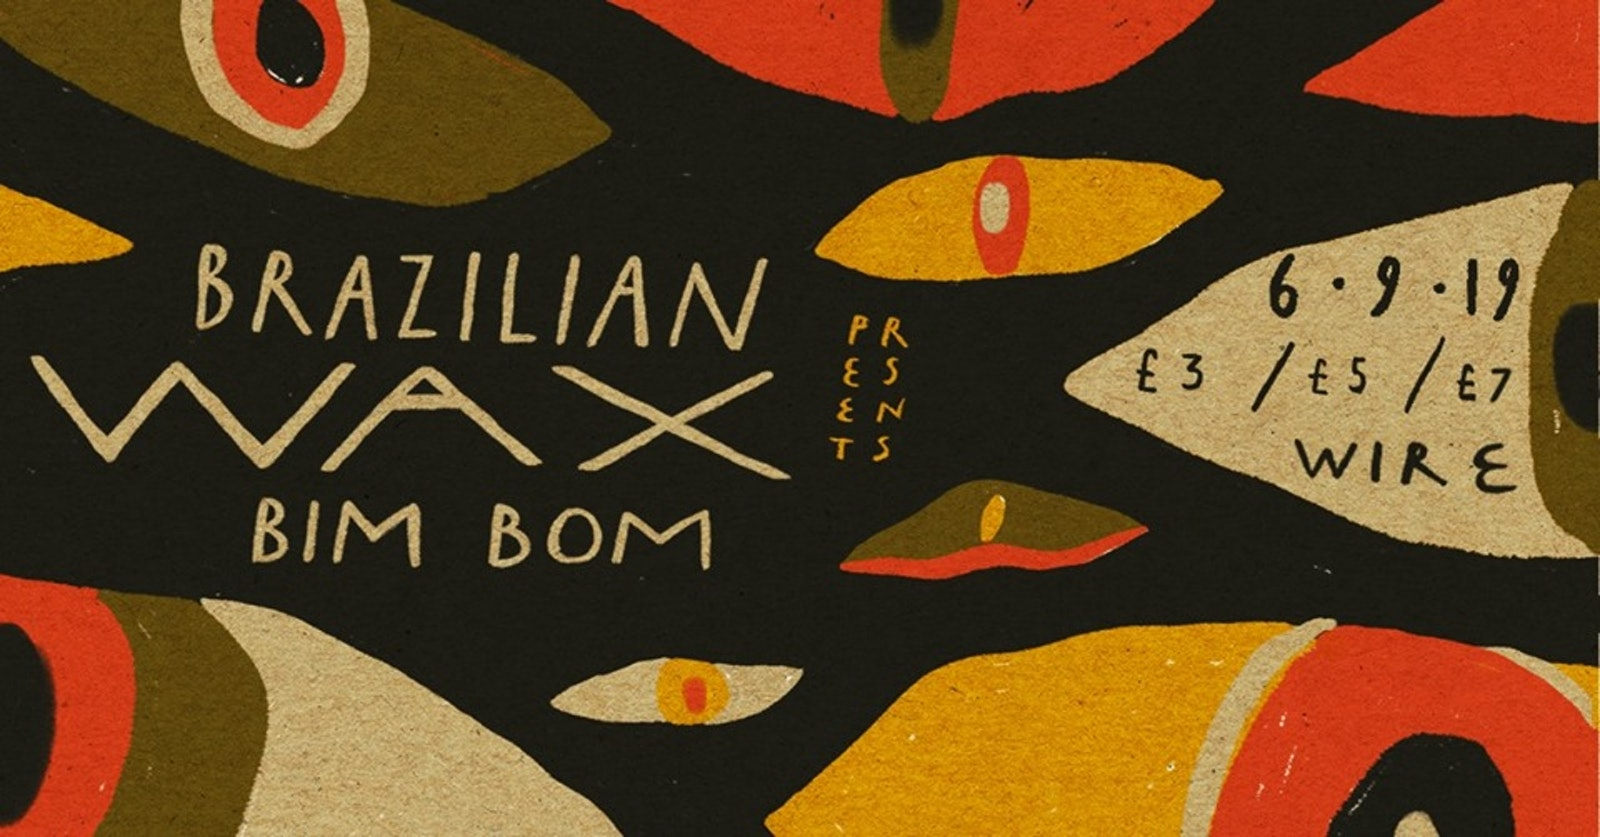 Brazilian Wax presents: Bim Bom